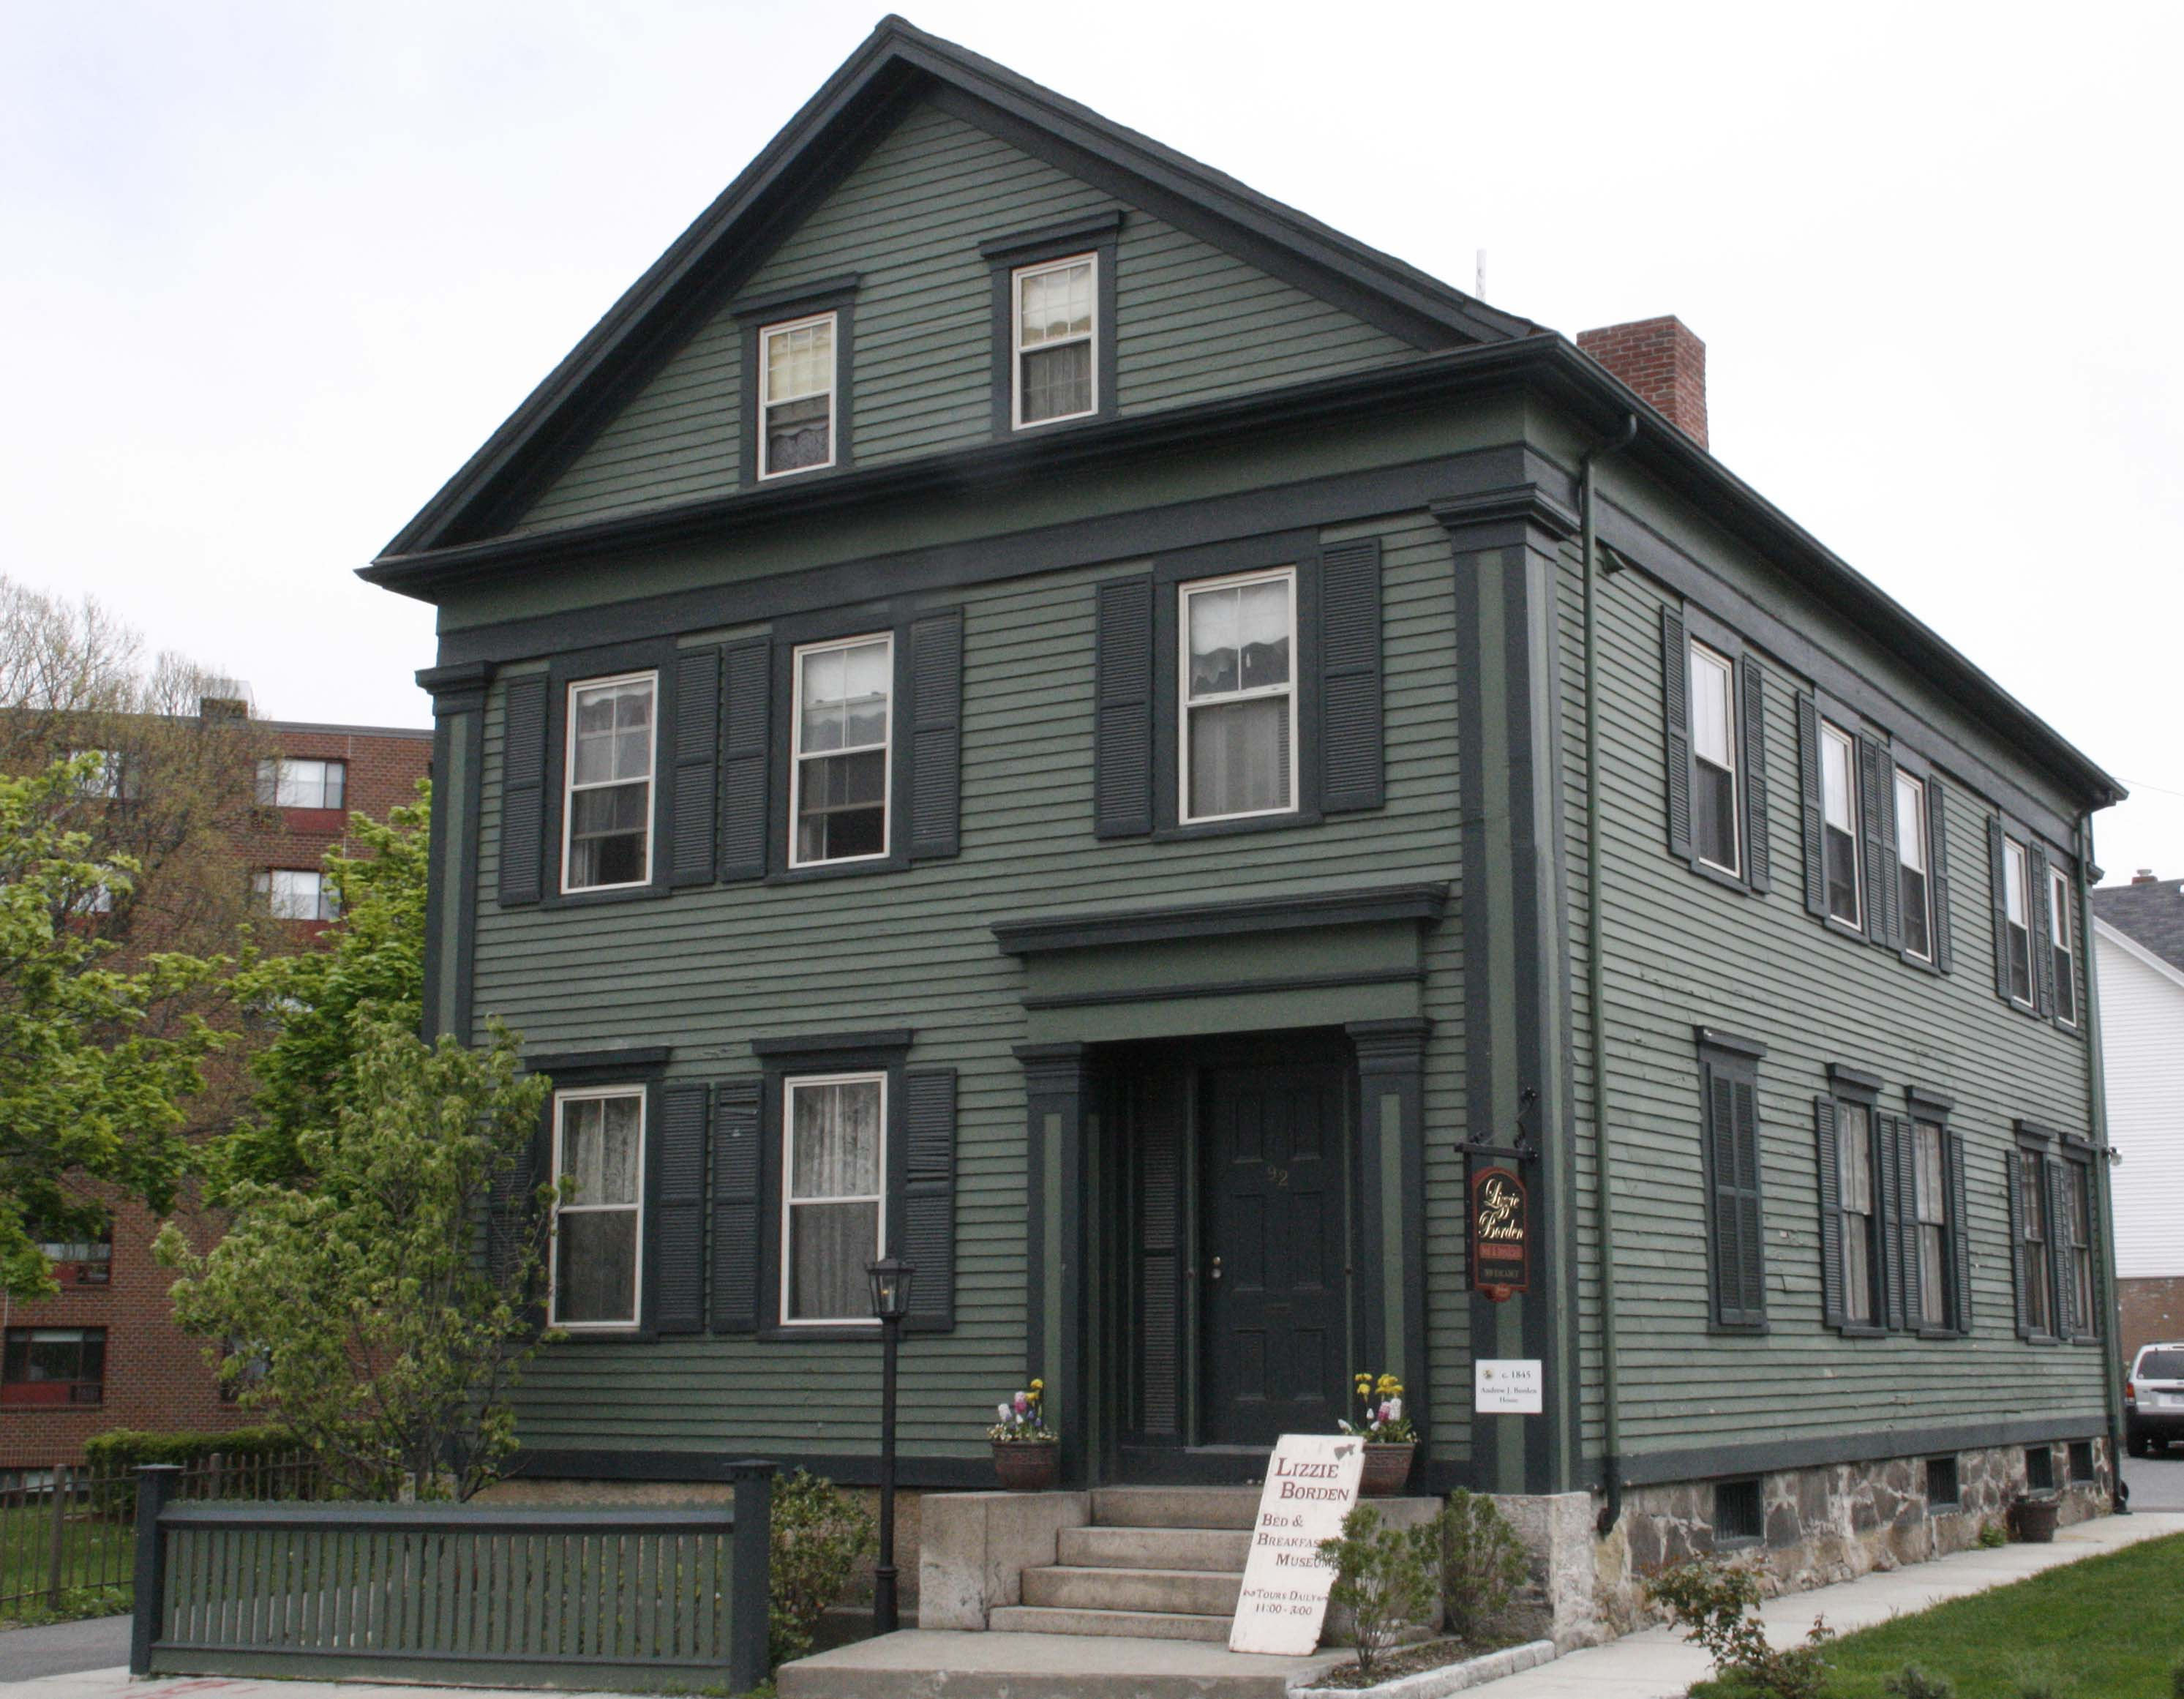 Lizzie Borden Bed and Breakfast Paranormal